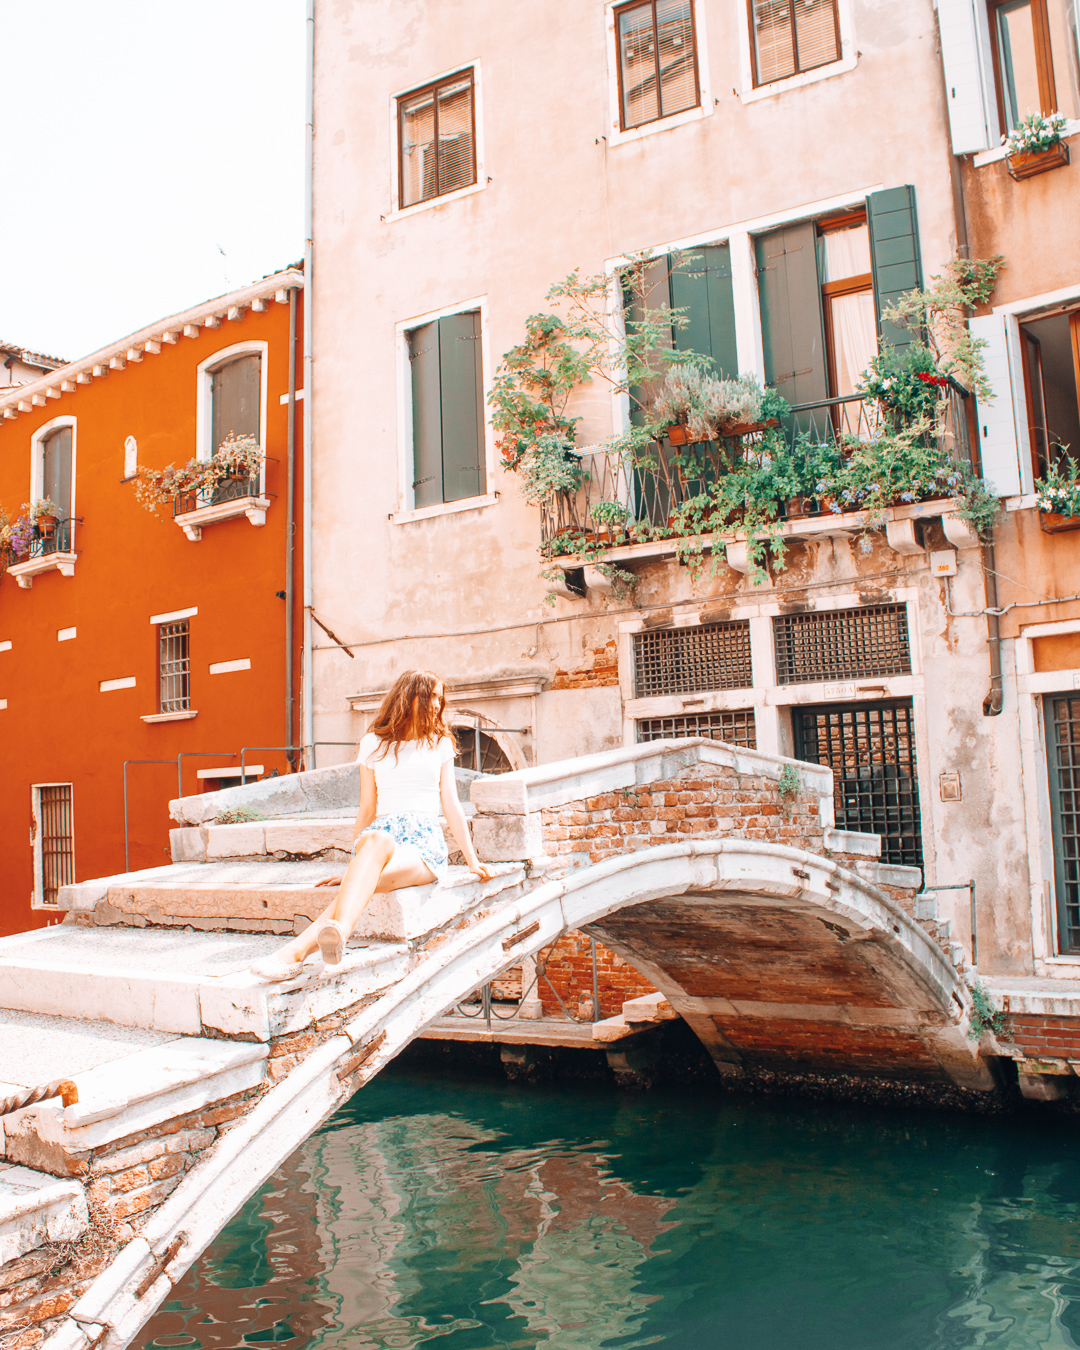 A bridge and colorful buildings in Venice